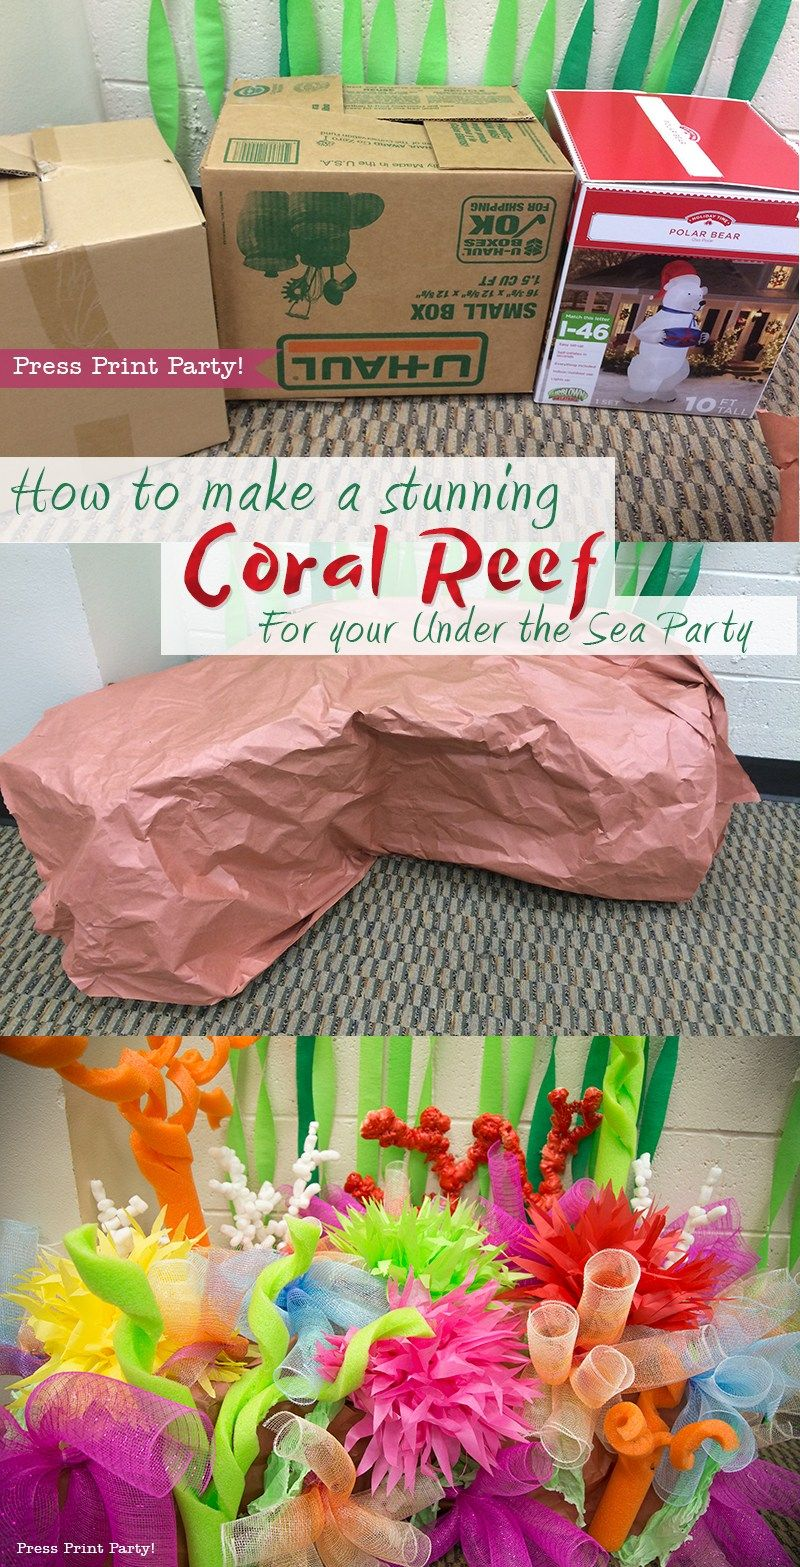 How to Make a Coral Reef Decoration - by Press Print Party! & How to Make a Coral Reef Decoration - by Press Print Party ...